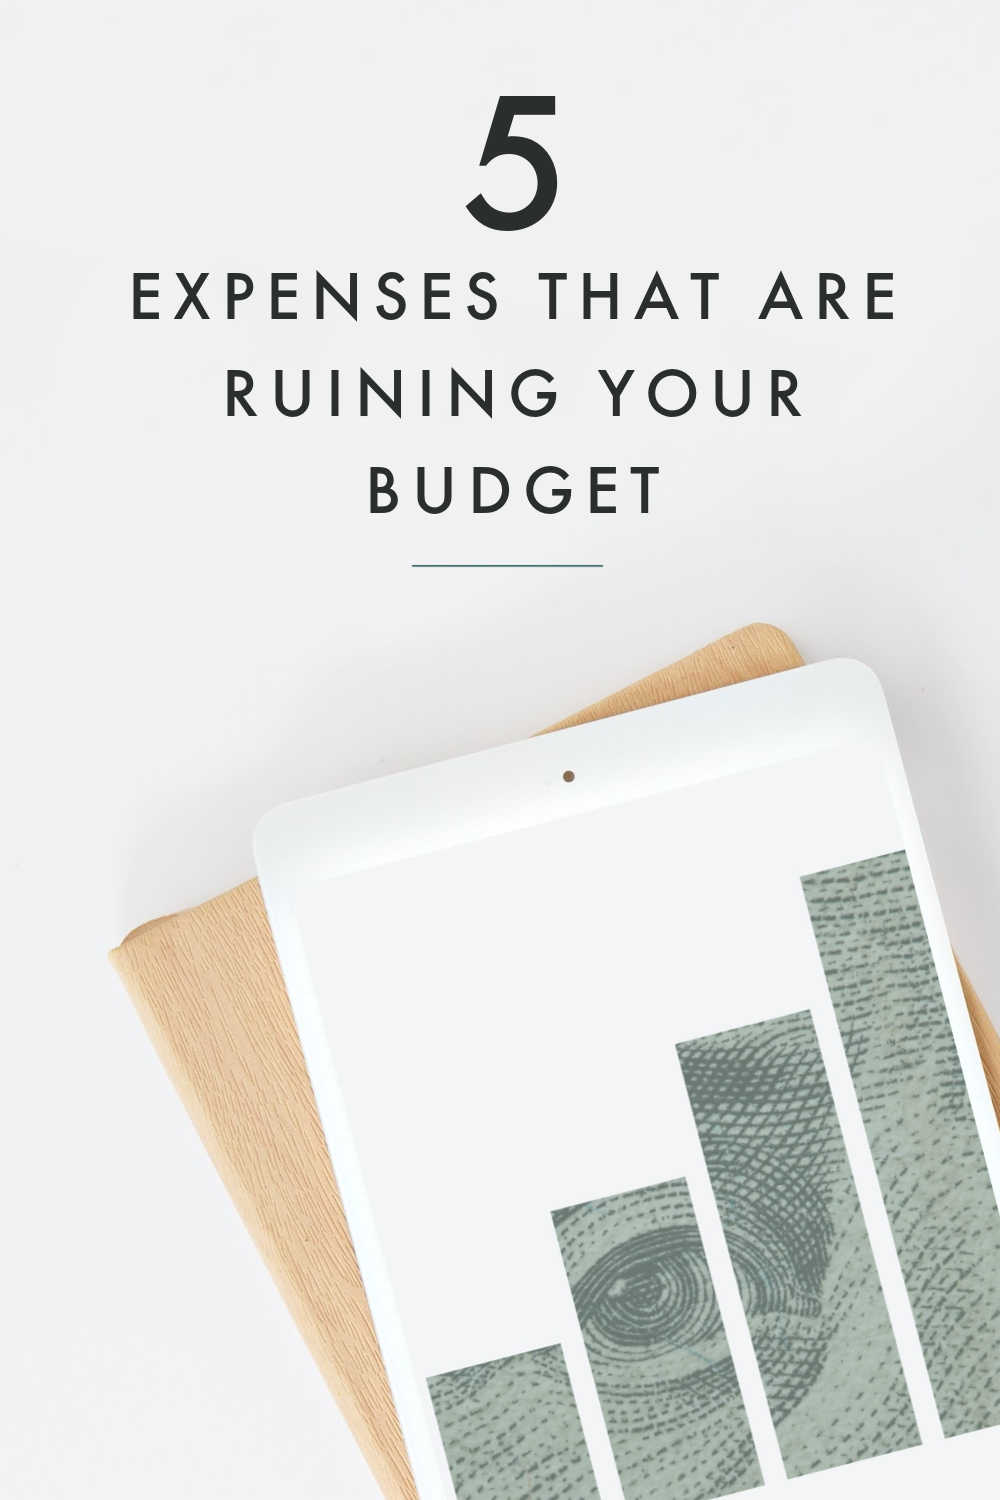 EXPENSES COSTING YOU MONEY